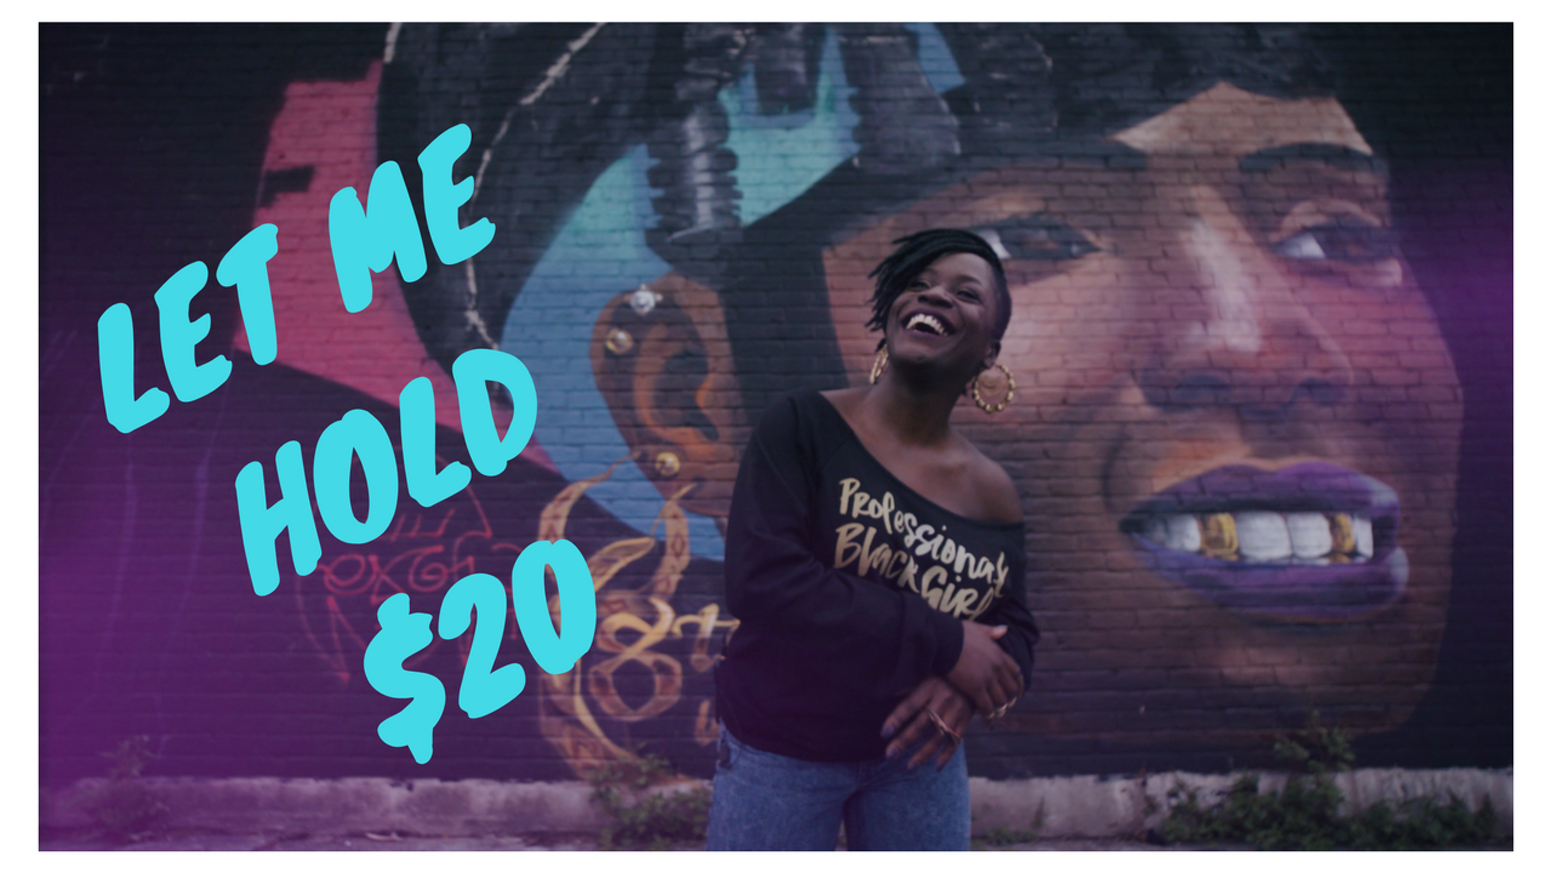 The Professional Black Girl web series celebrates everyday, round-the-way #BlackGirlMagic, this time in New Orleans!